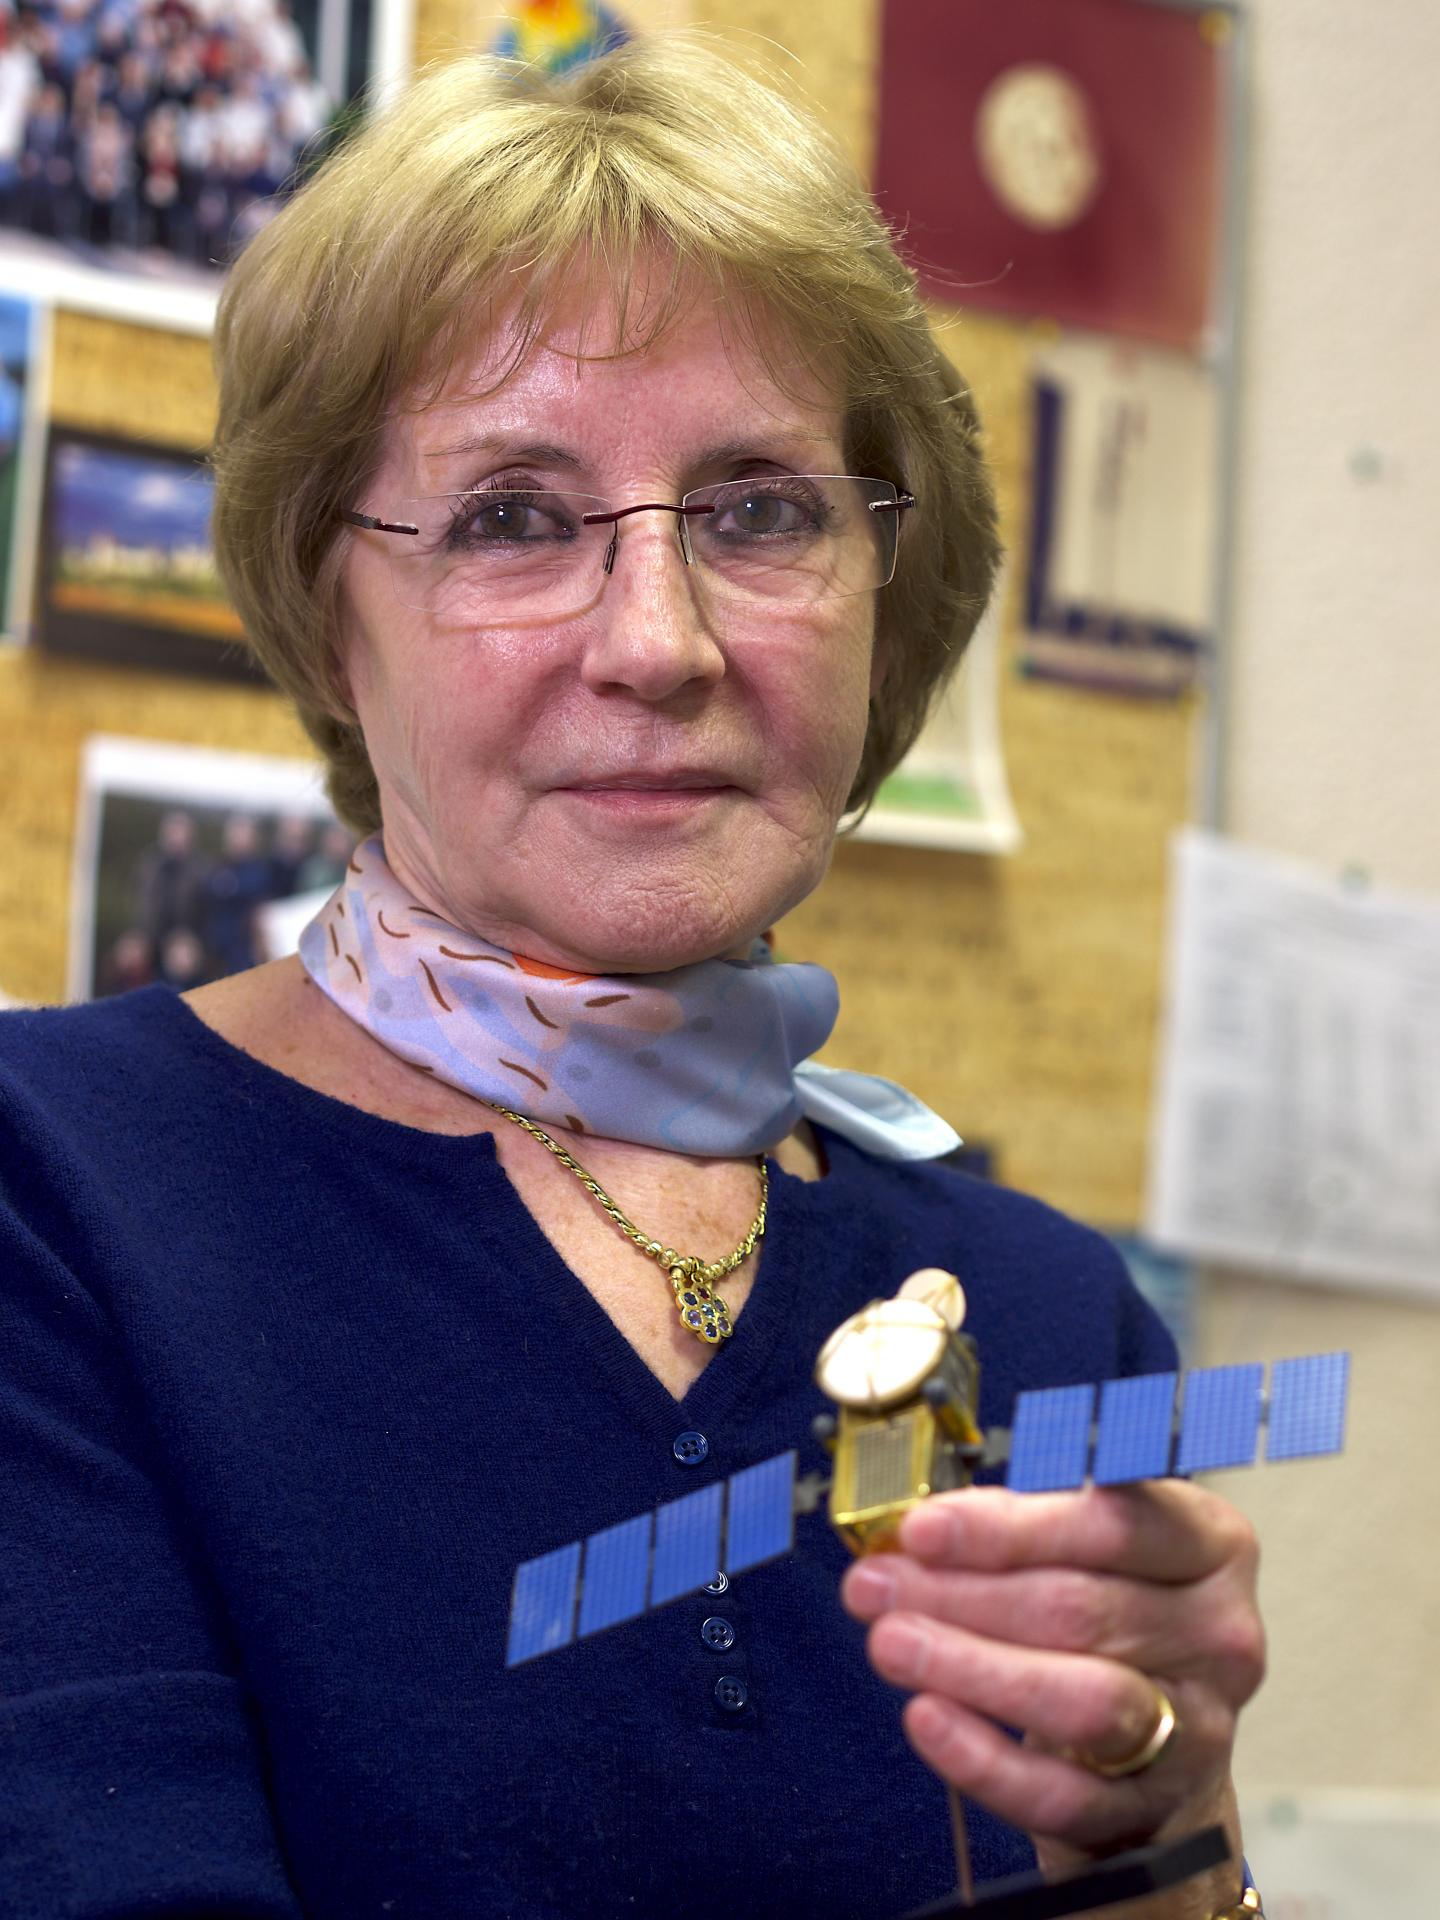 Anny Cazenave, Winner of the BBVA Frontiers of Knowledge Award in Climate Change